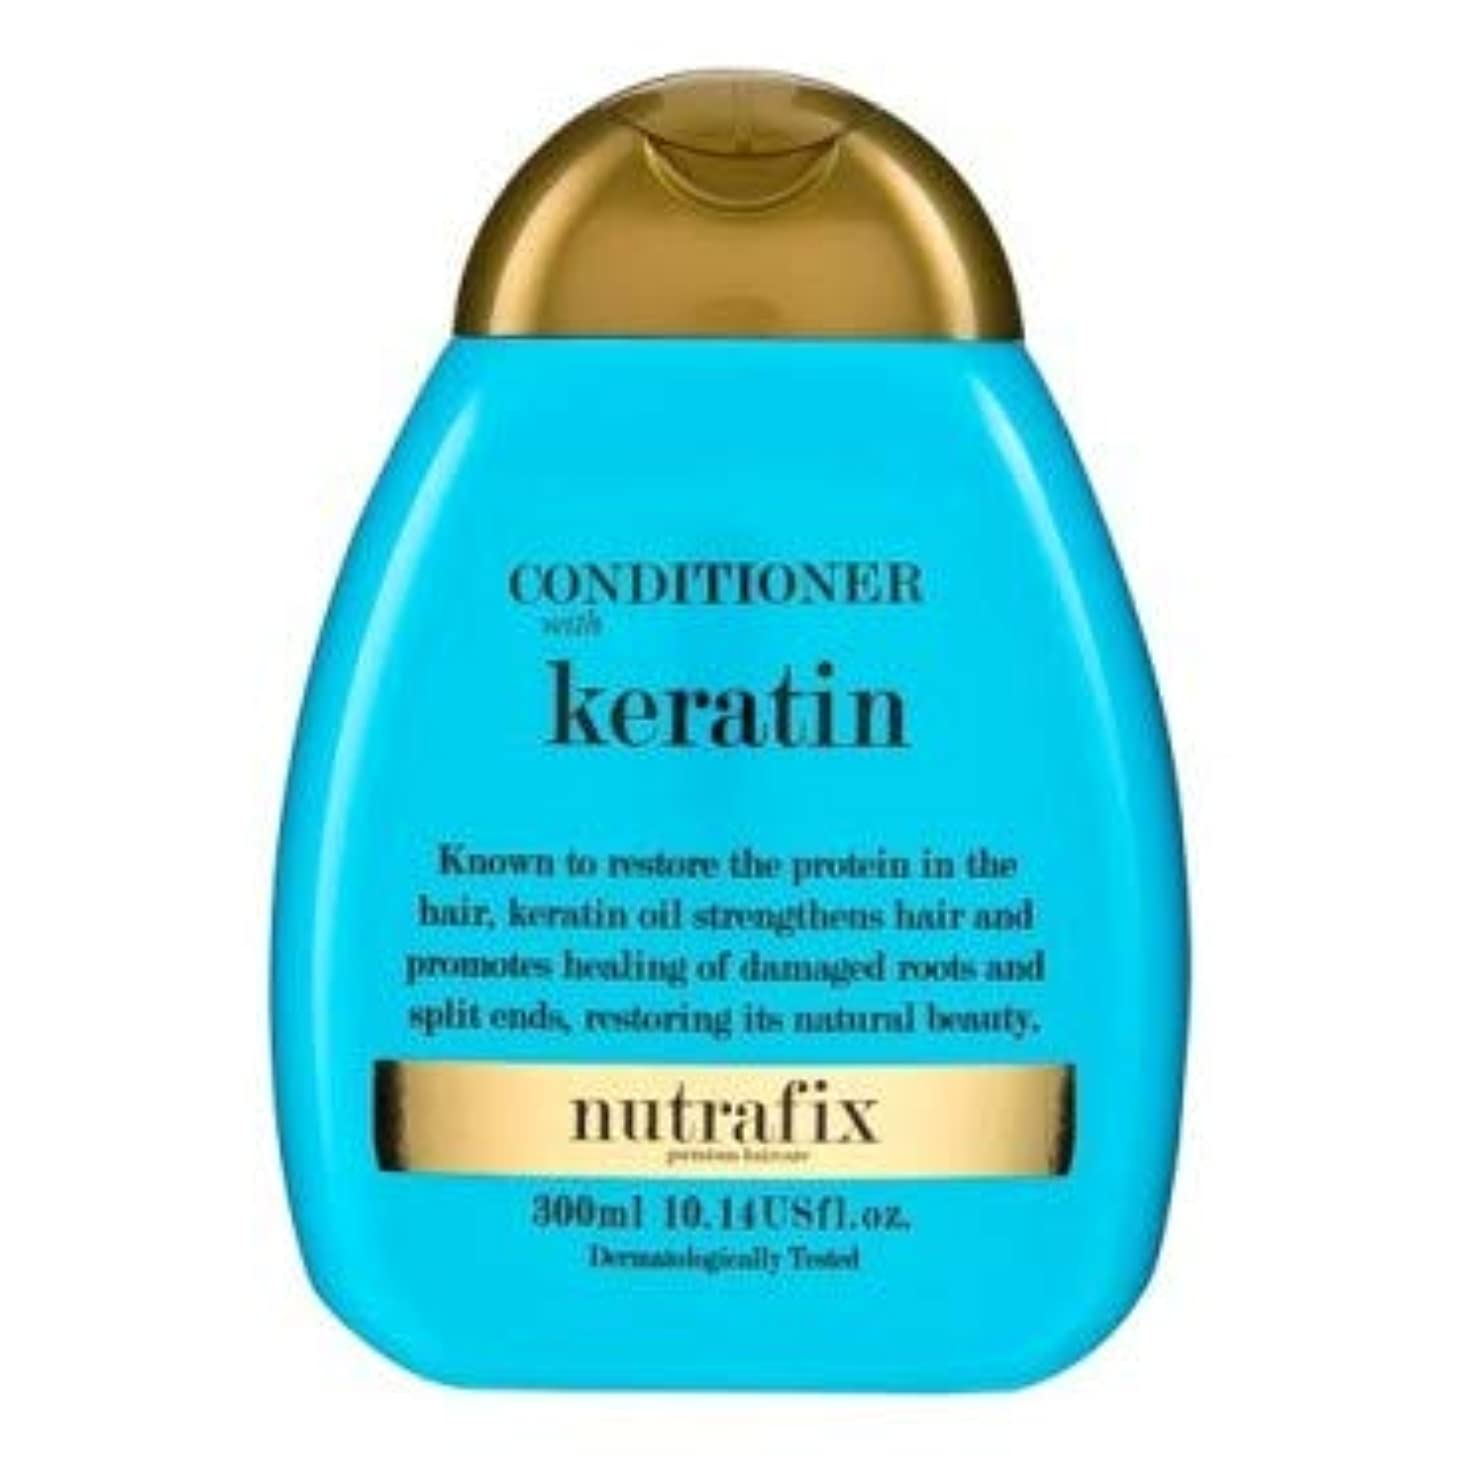 Nutrafix Conditioner withケラチン、300ml